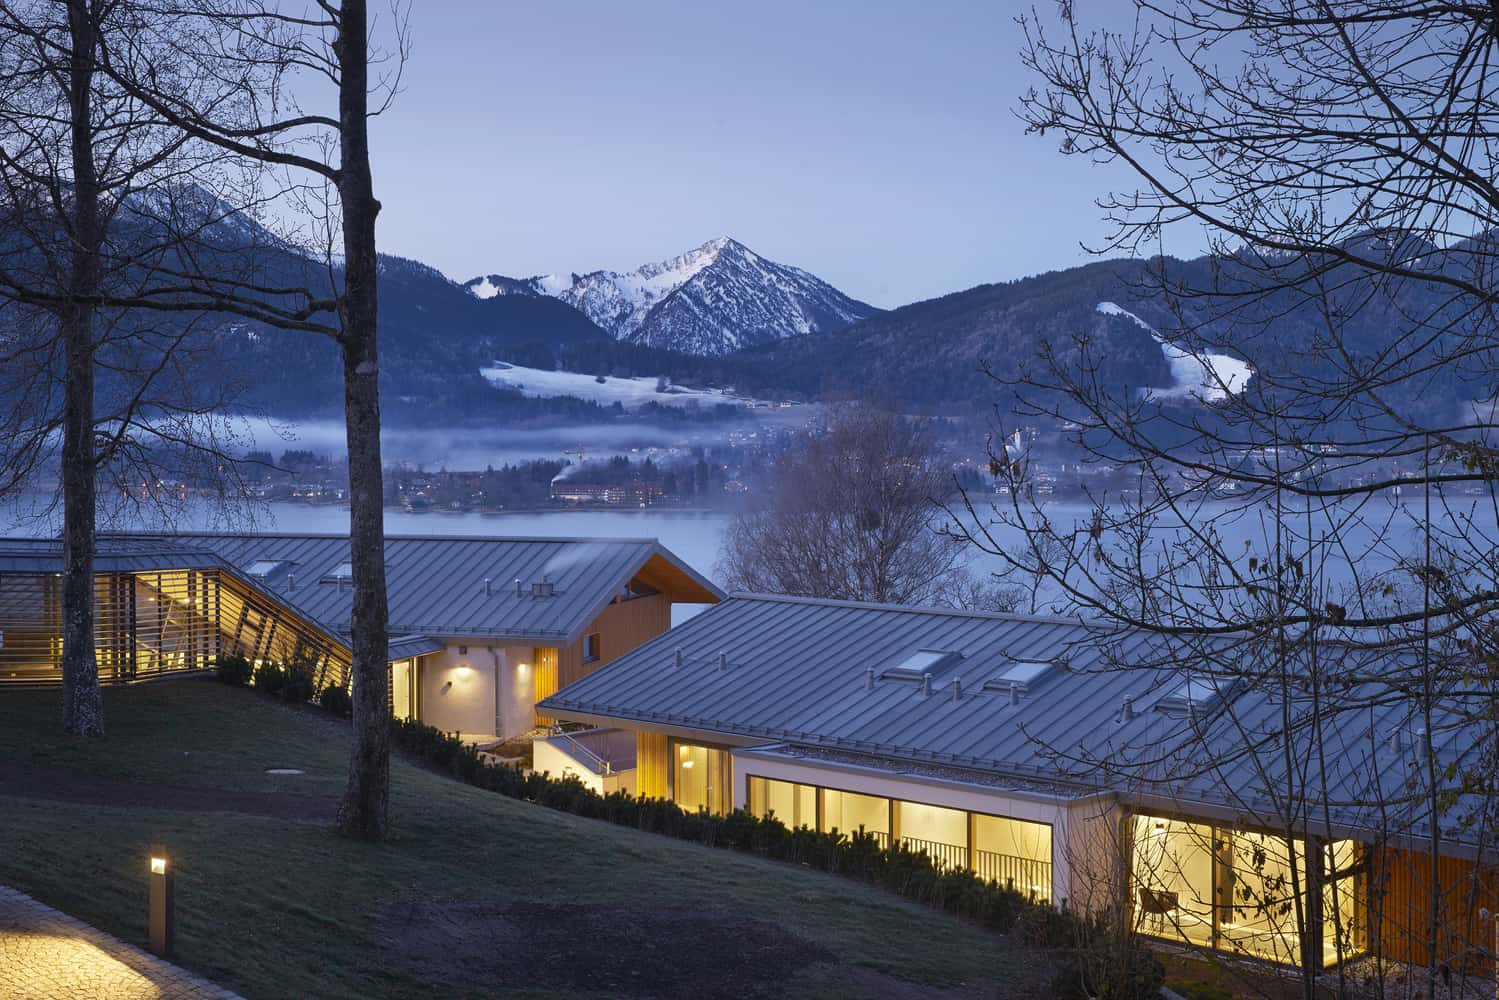 Warm Chalet With Fabulous Views Over The Mountains